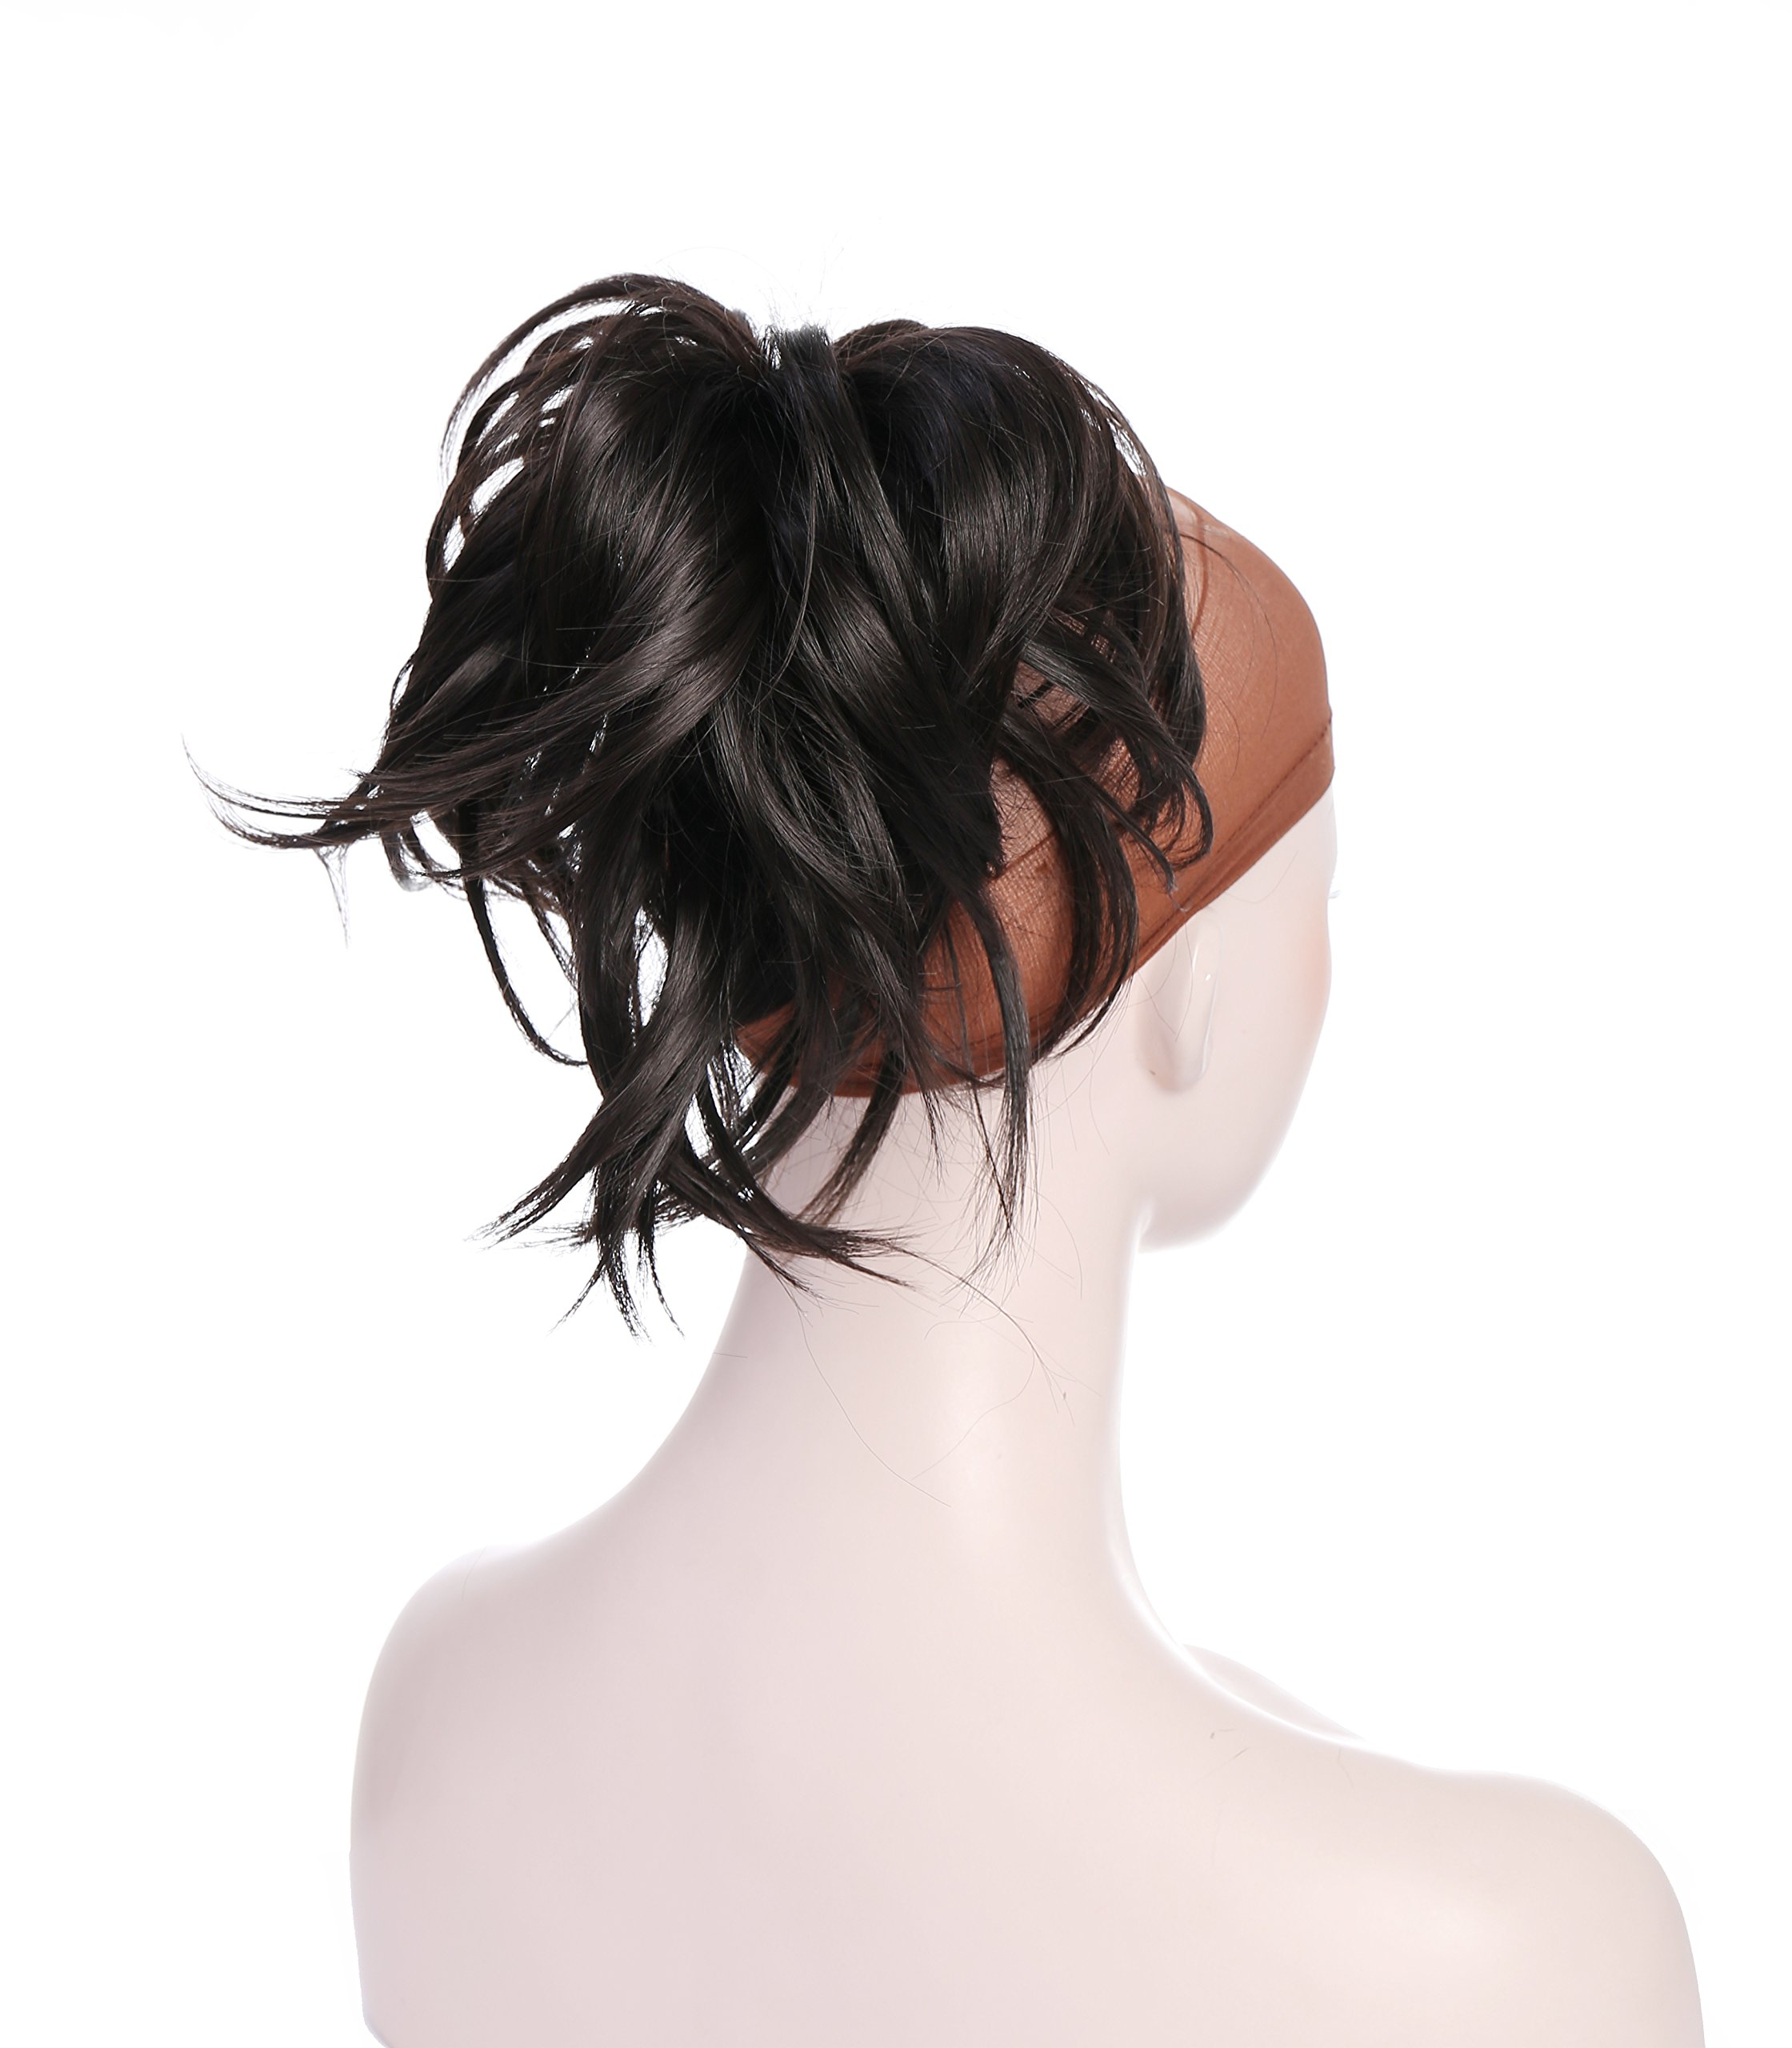 Onedor 12 inch Premium Synthetic Adjustable & Customizable Updo Style Ponytail Hair Extension with Clip on Claw Attachment (4# Dark Brown) by Onedor